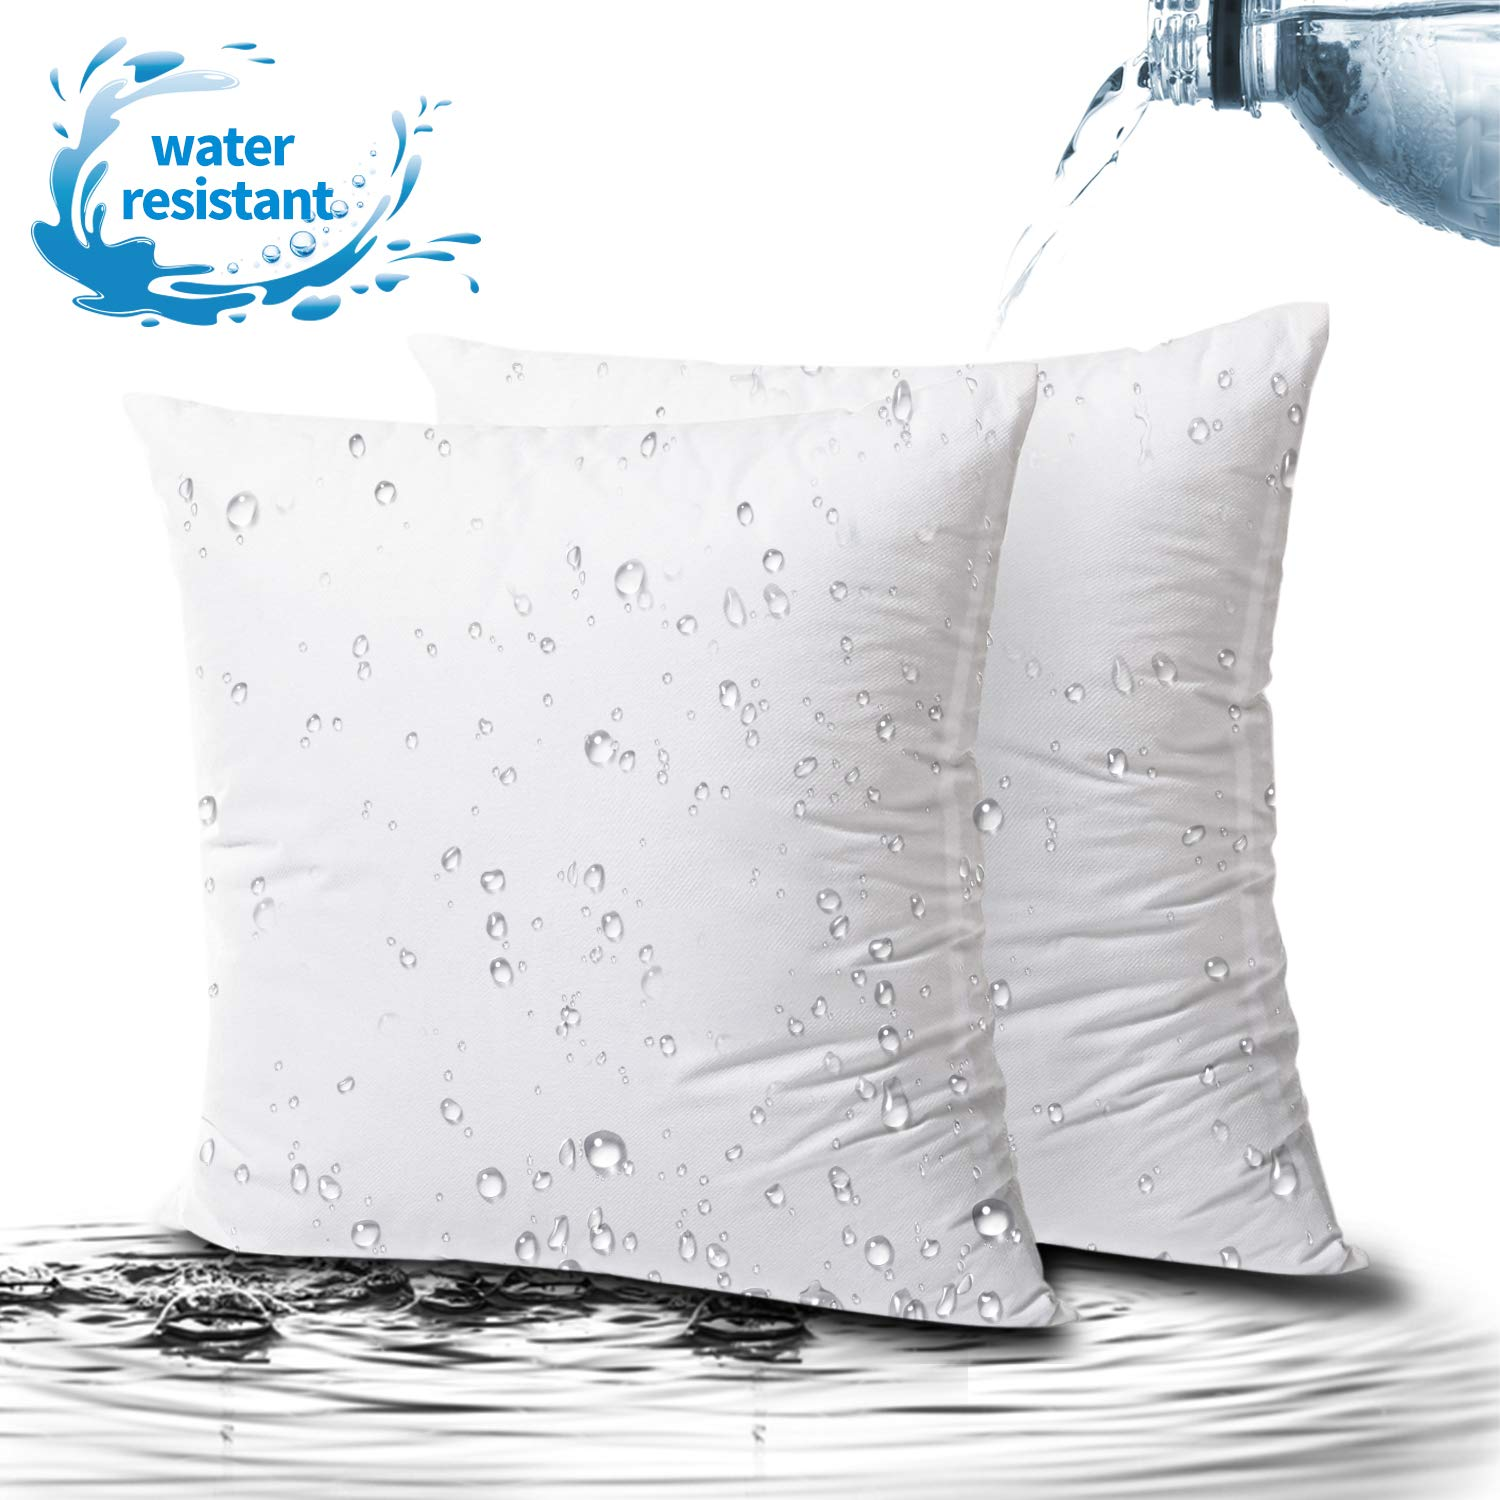 Phantoscope 2 Packs Outdoor Anti-Mold Water Resistant Throw Pillow Inserts Hypoallergenic Square Form Sham Stuffer 22 x 22 inches